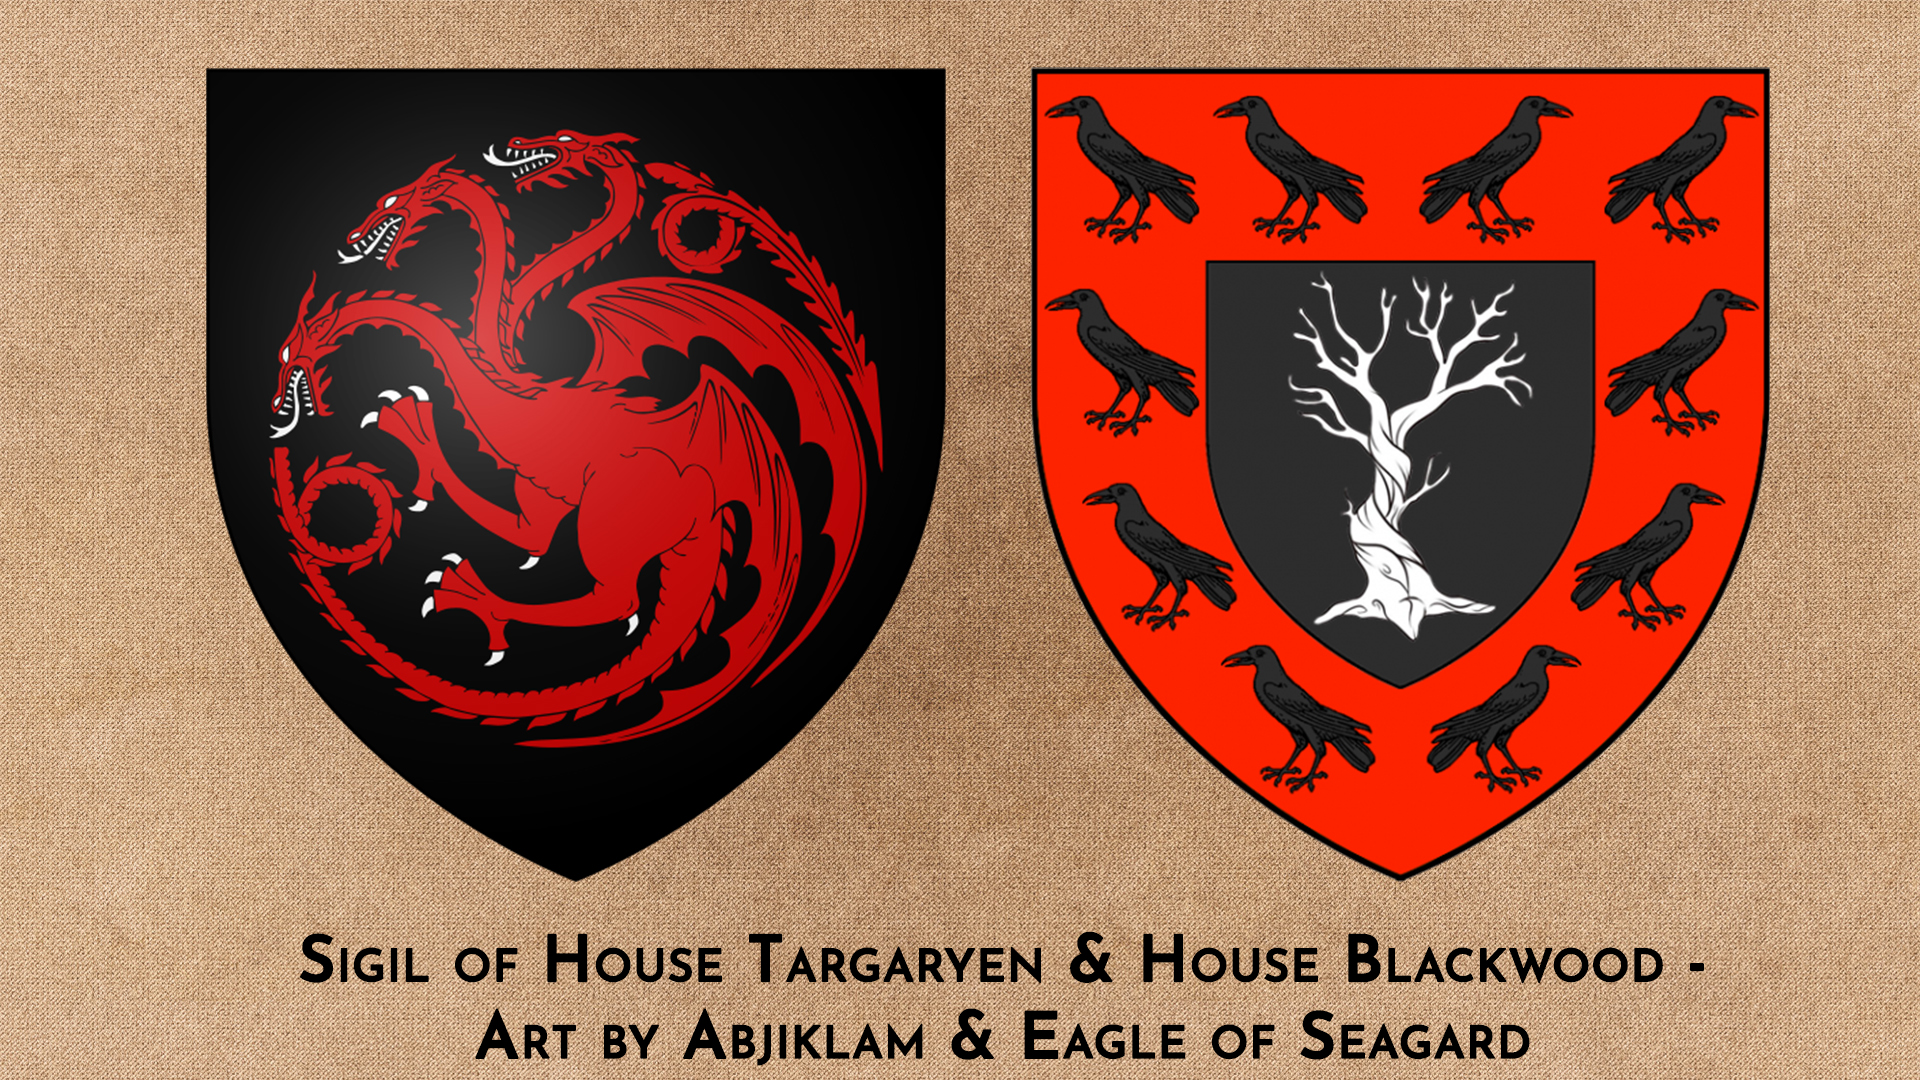 House Targaryen & House Blackwood by Abjiklam